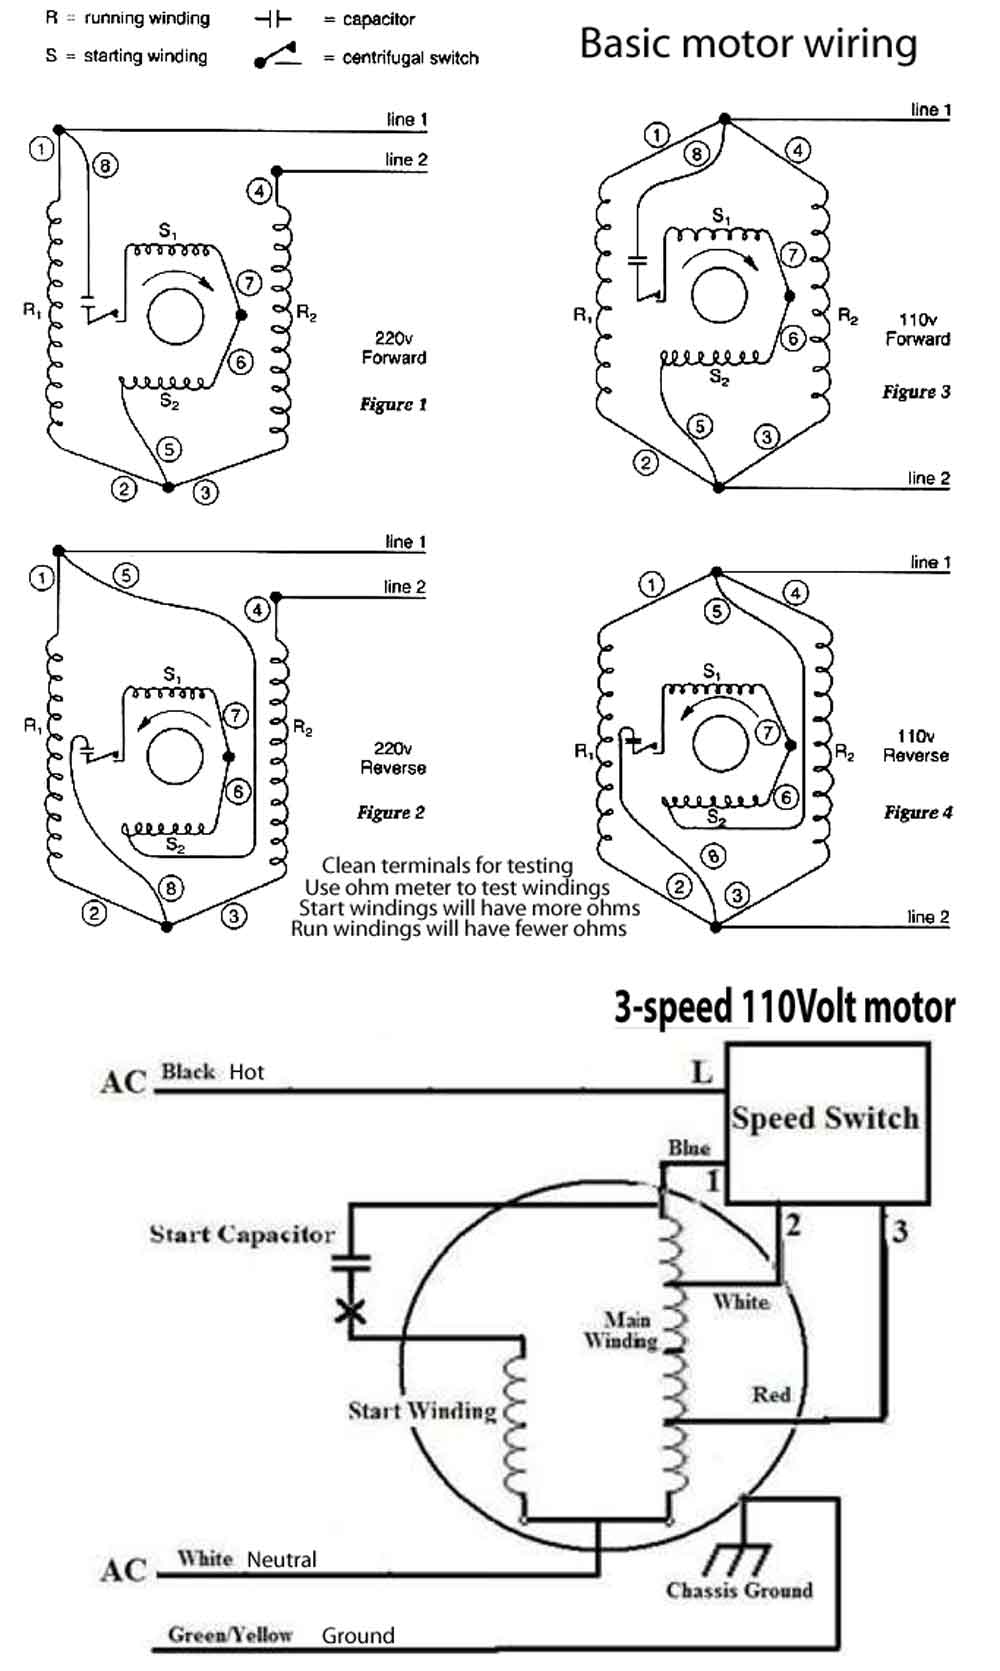 Motor wiring 500 westinghouse desk fan wiring diagram on westinghouse images free on ac condenser fan motor run capacitor wiring diagram to dayton